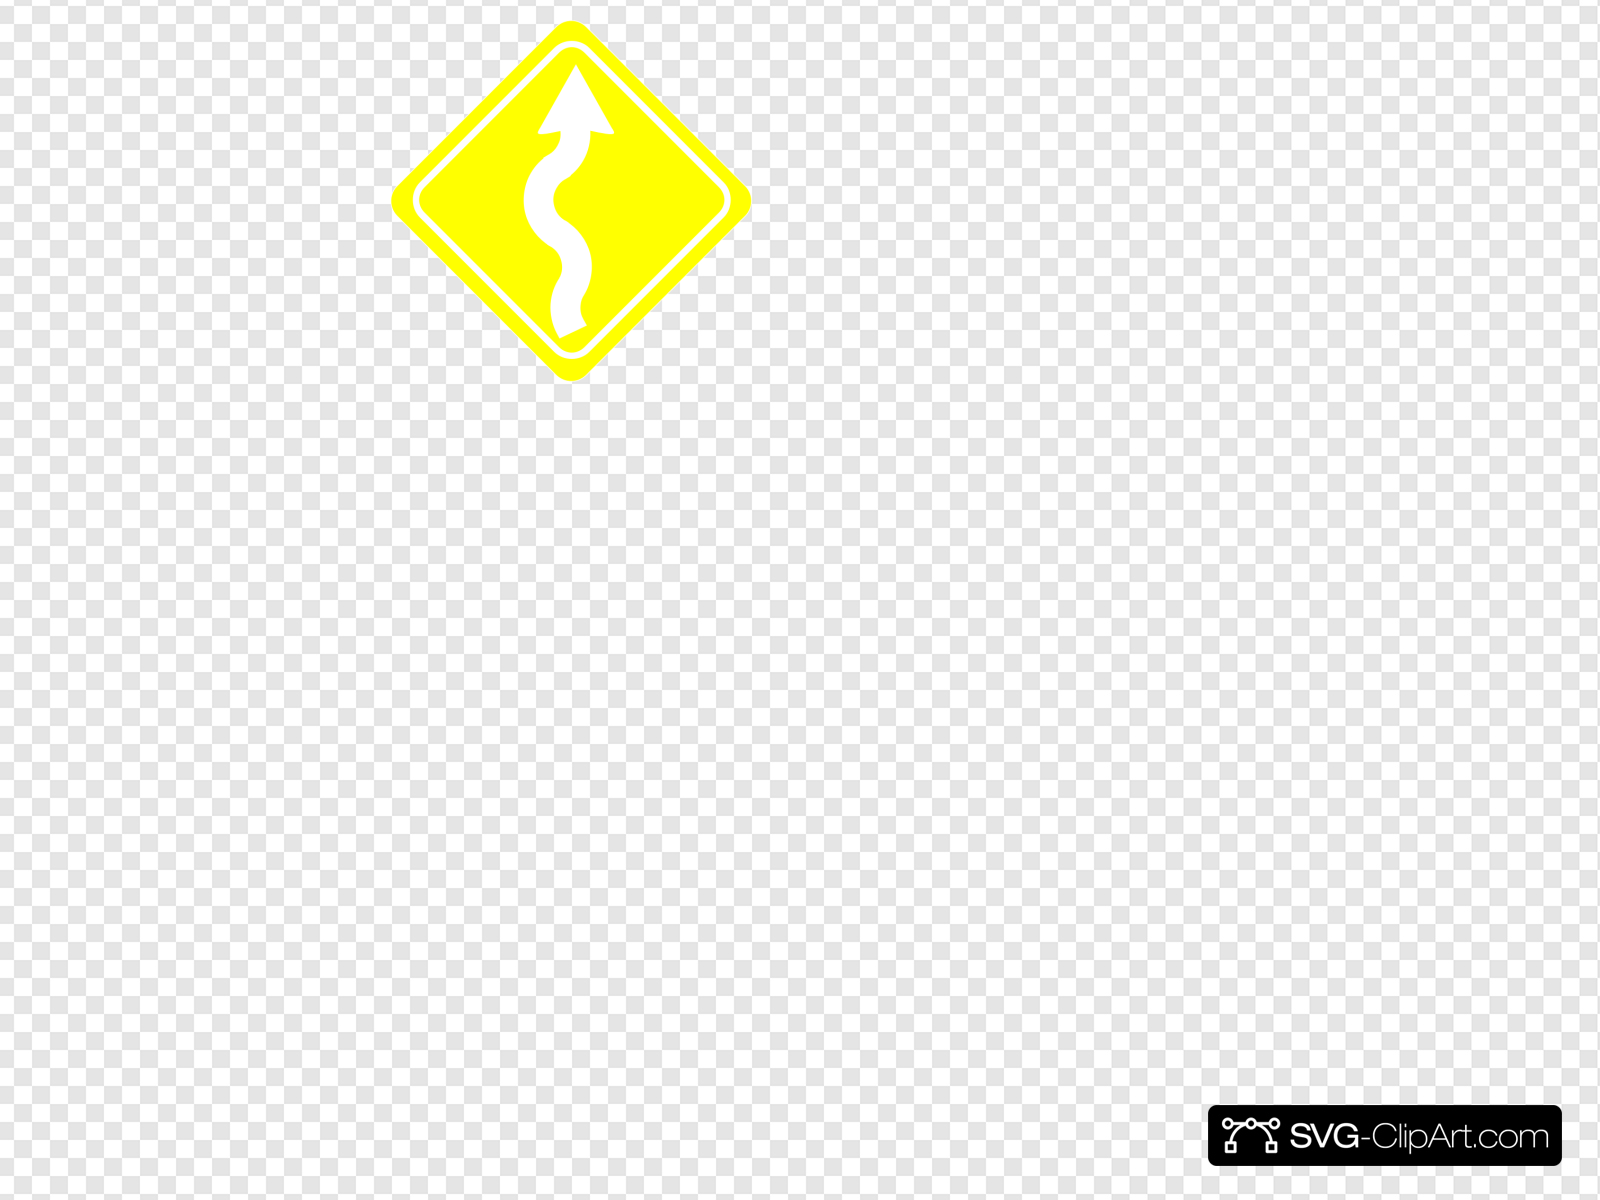 This Way Up Yellow Clip art, Icon and SVG.